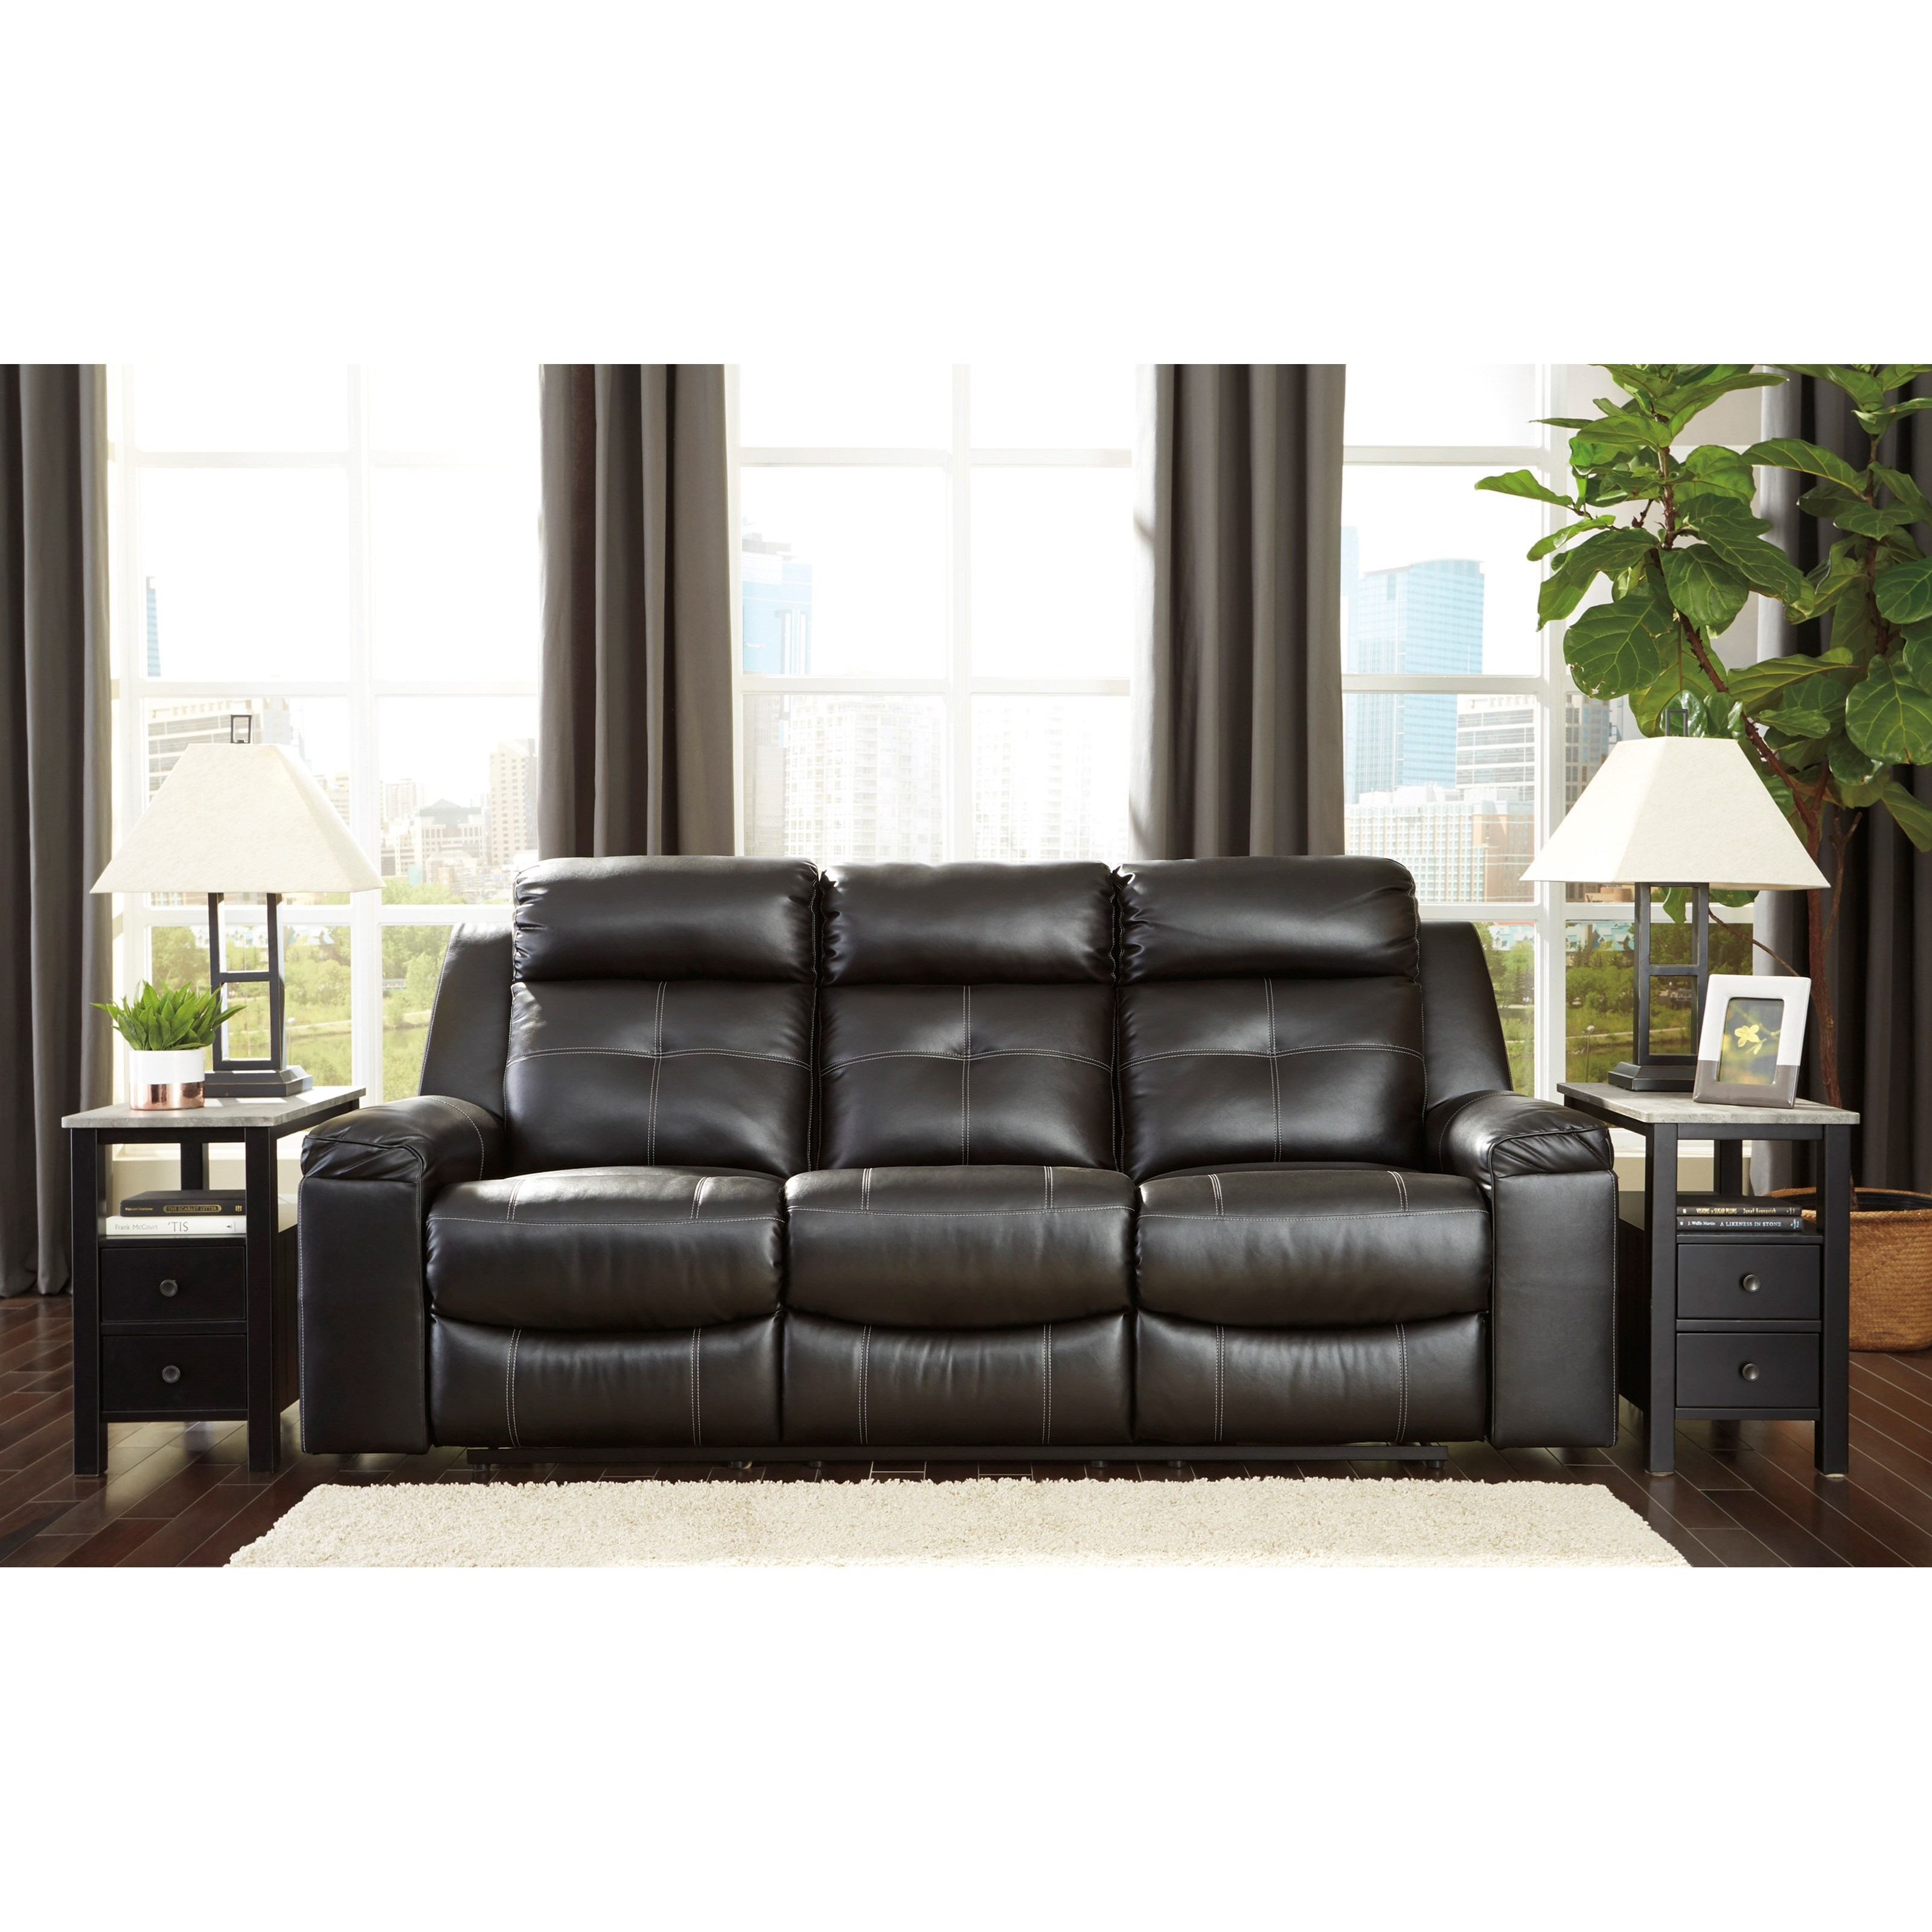 Signature Design By Ashley Kempten Contemporary Reclining